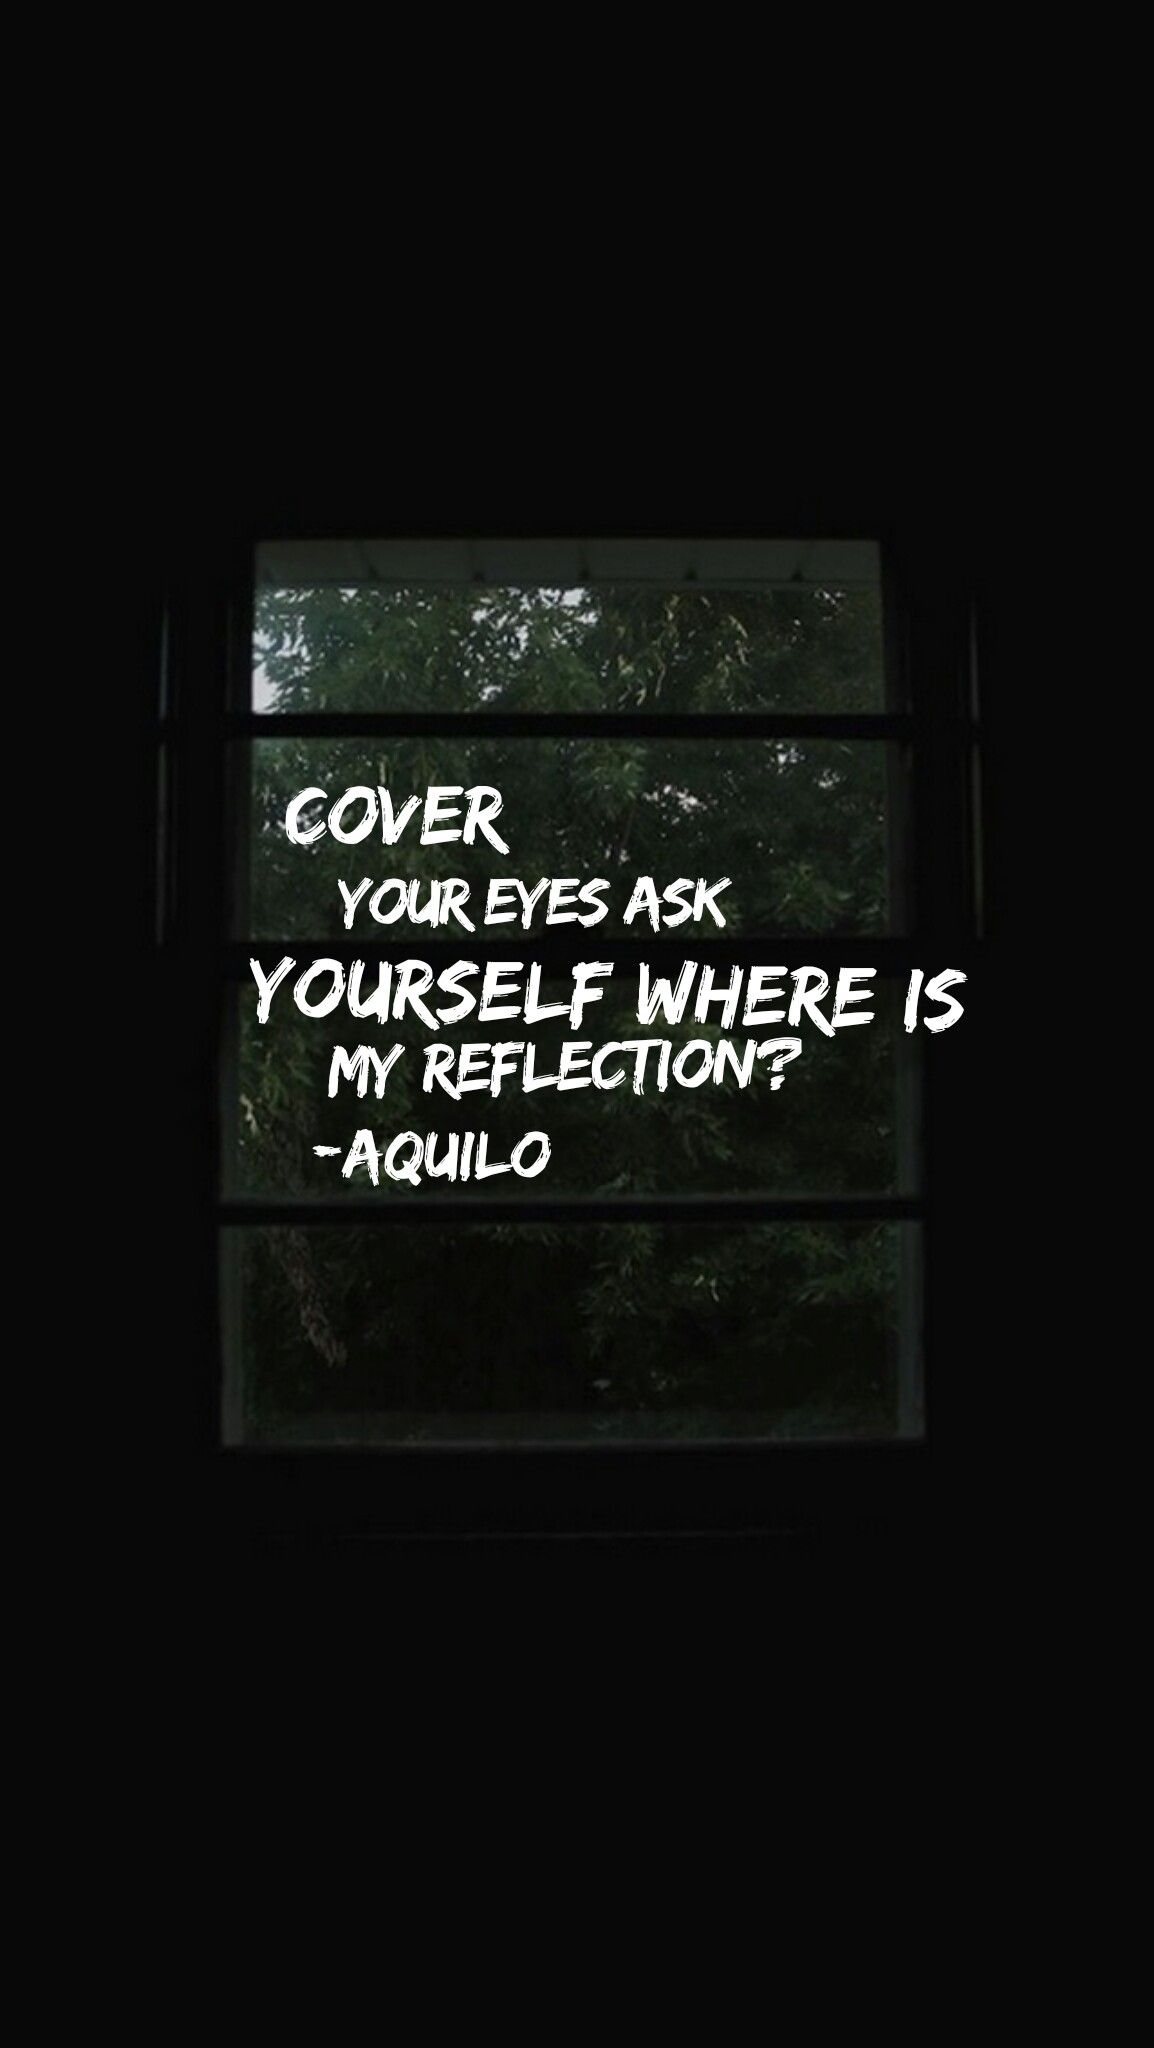 Wallpaper Lyrics Aquilo You There With Images Lyrics Song